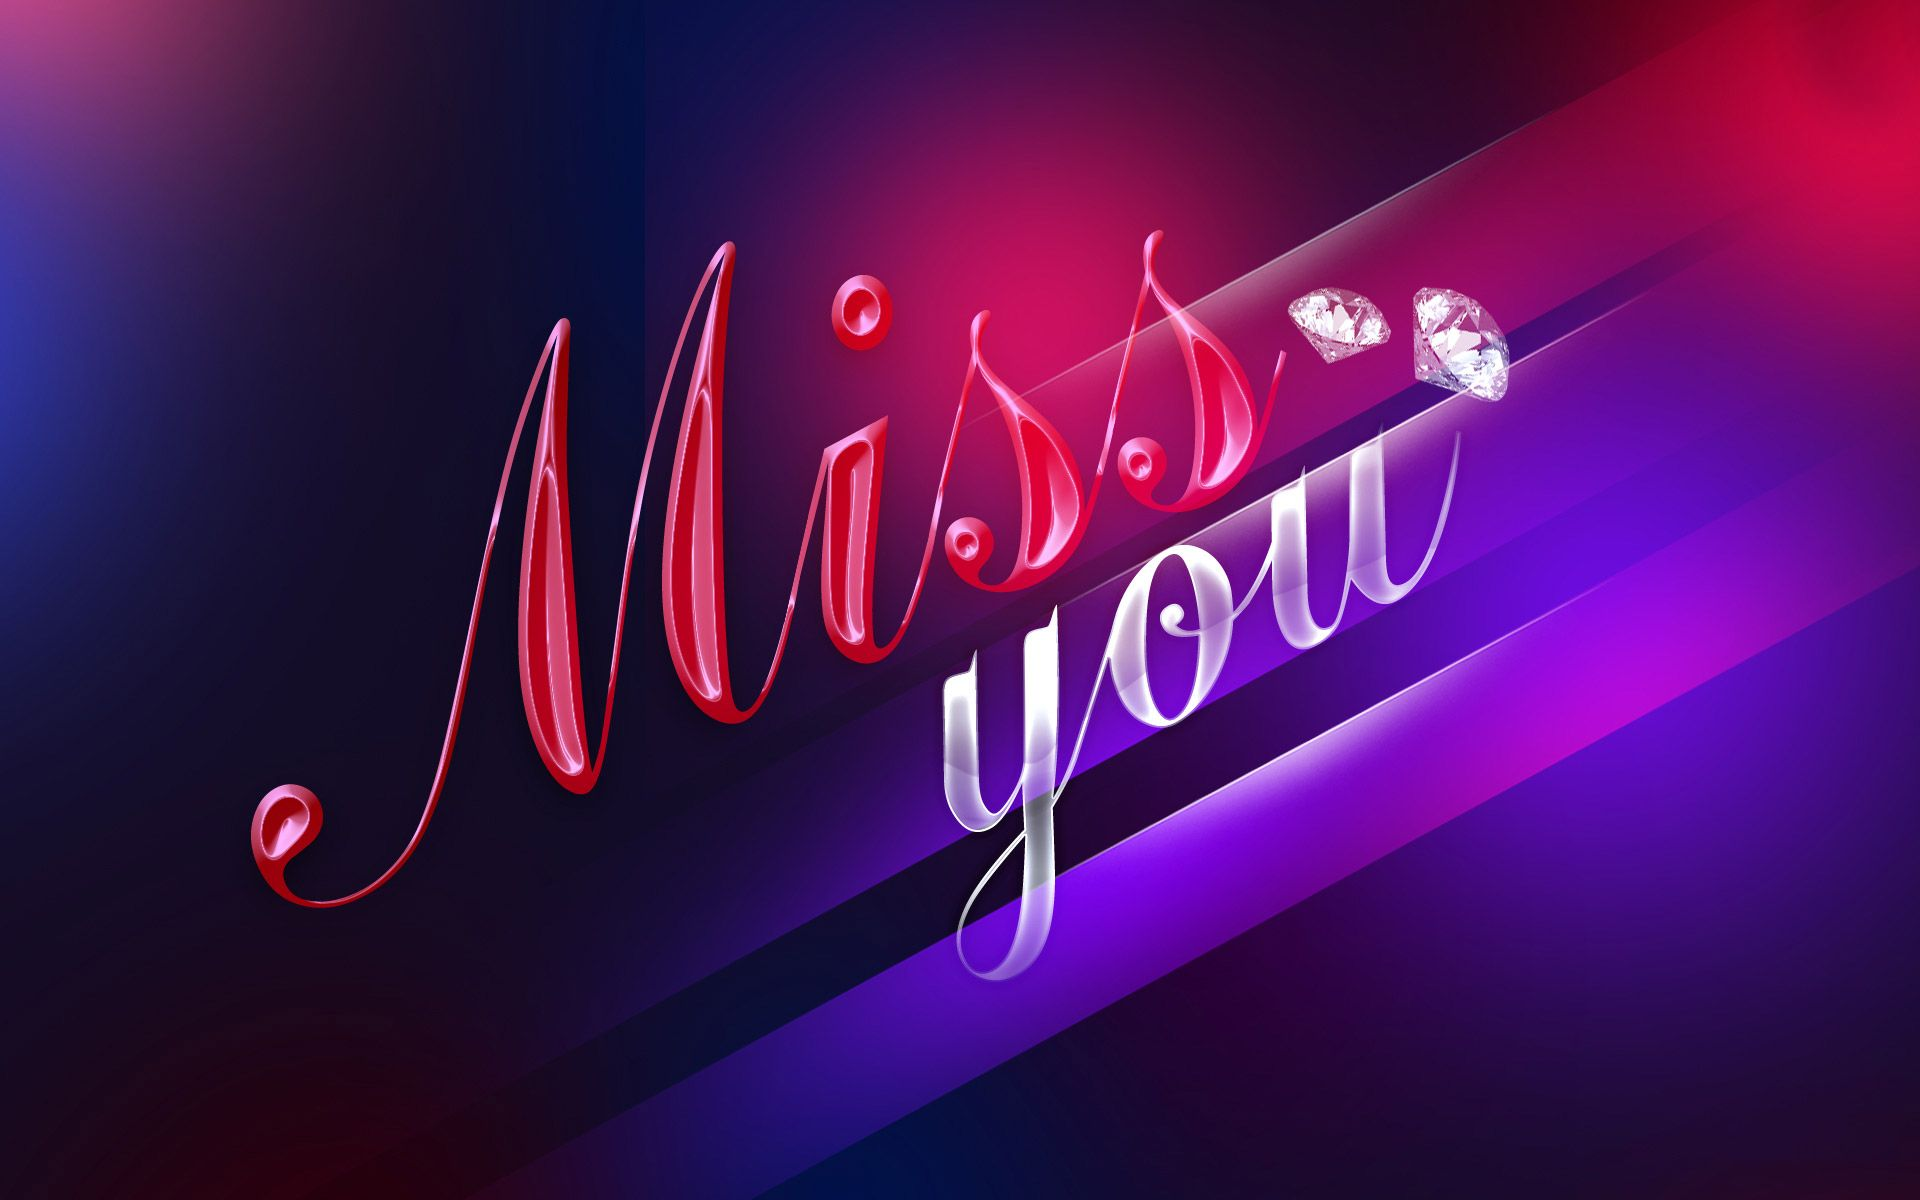 Wallpaper download i miss you - I Miss You U Photos Pics Images Wallpaper Pictures For Love